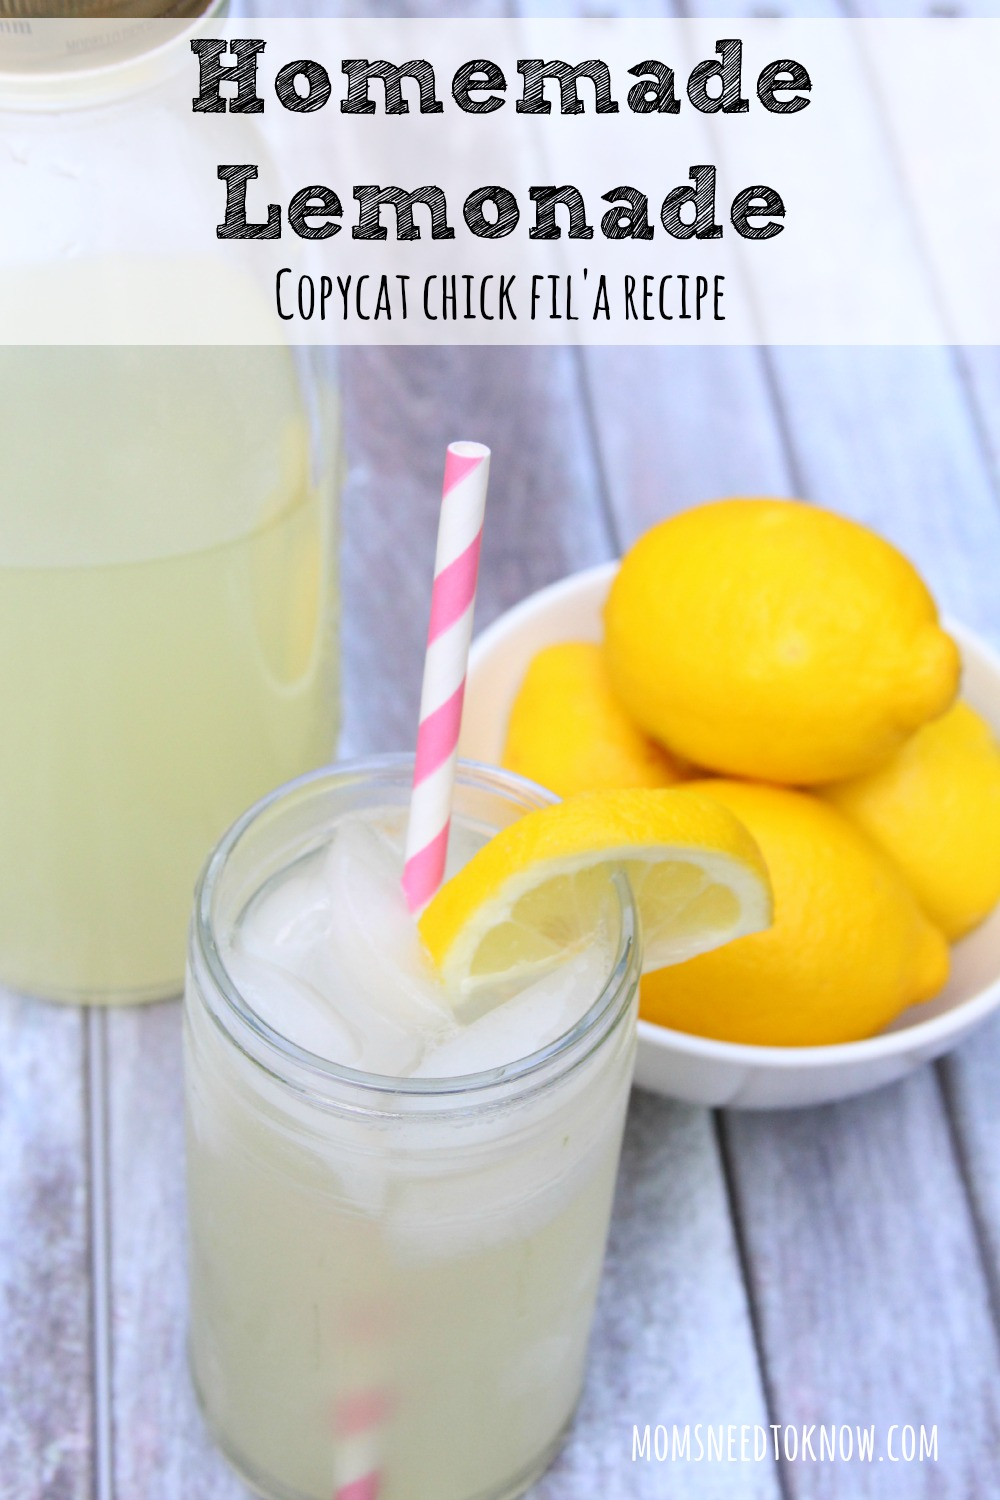 How To Make Homemade Lemonade Copycat Chick Fil A Recipe Moms Need To Know